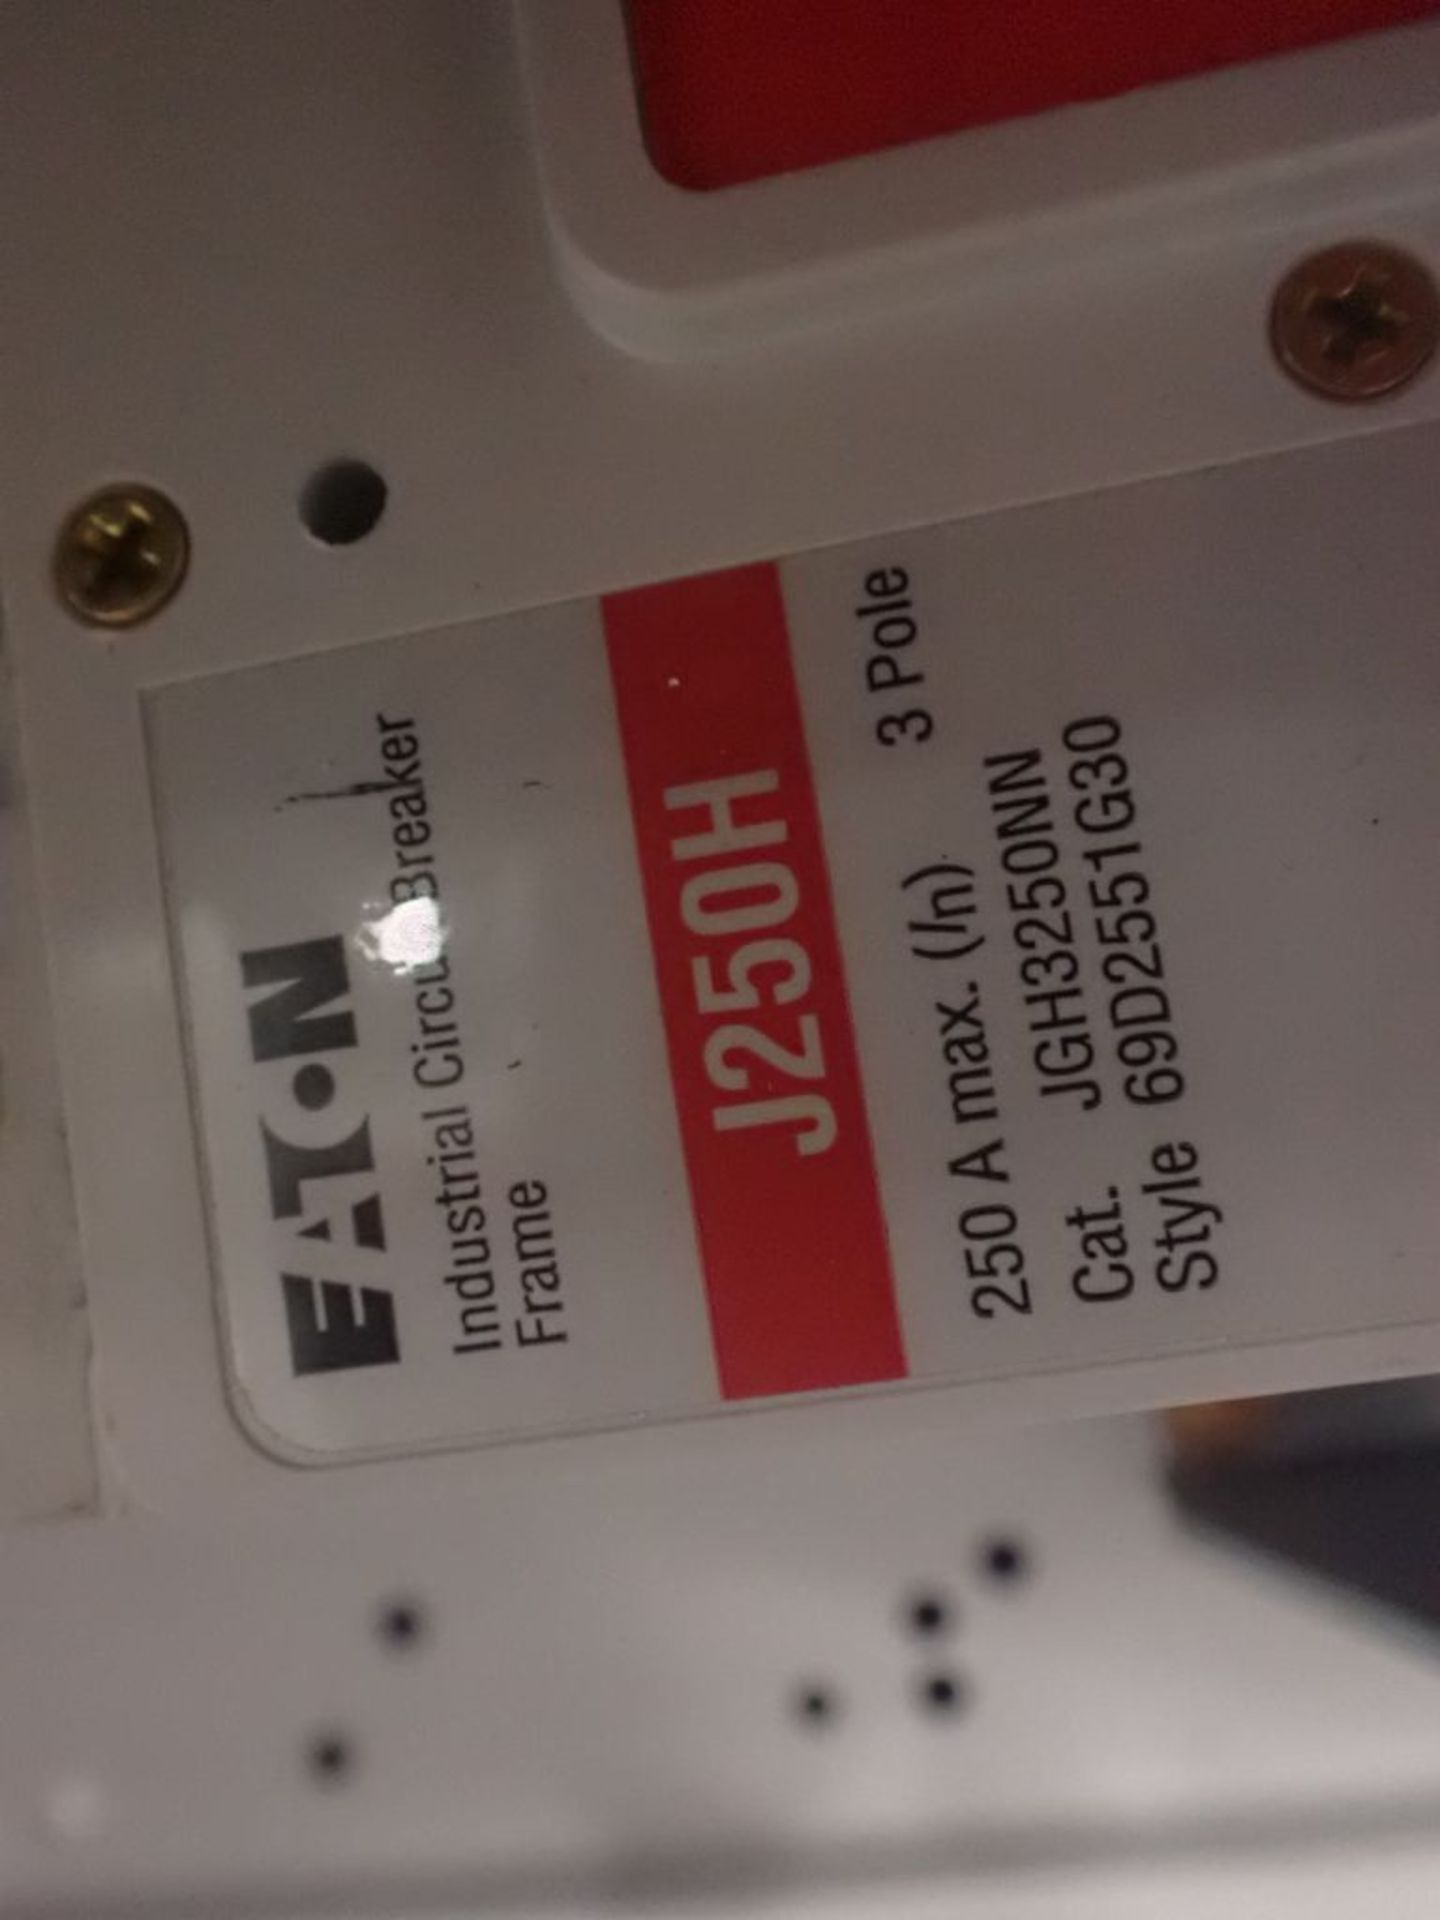 Eaton Freedom 2100 Series Motor Control Center   (2) F206-15A-10HP; (1) F206-30A-10HP; (1) FDRB- - Image 42 of 61